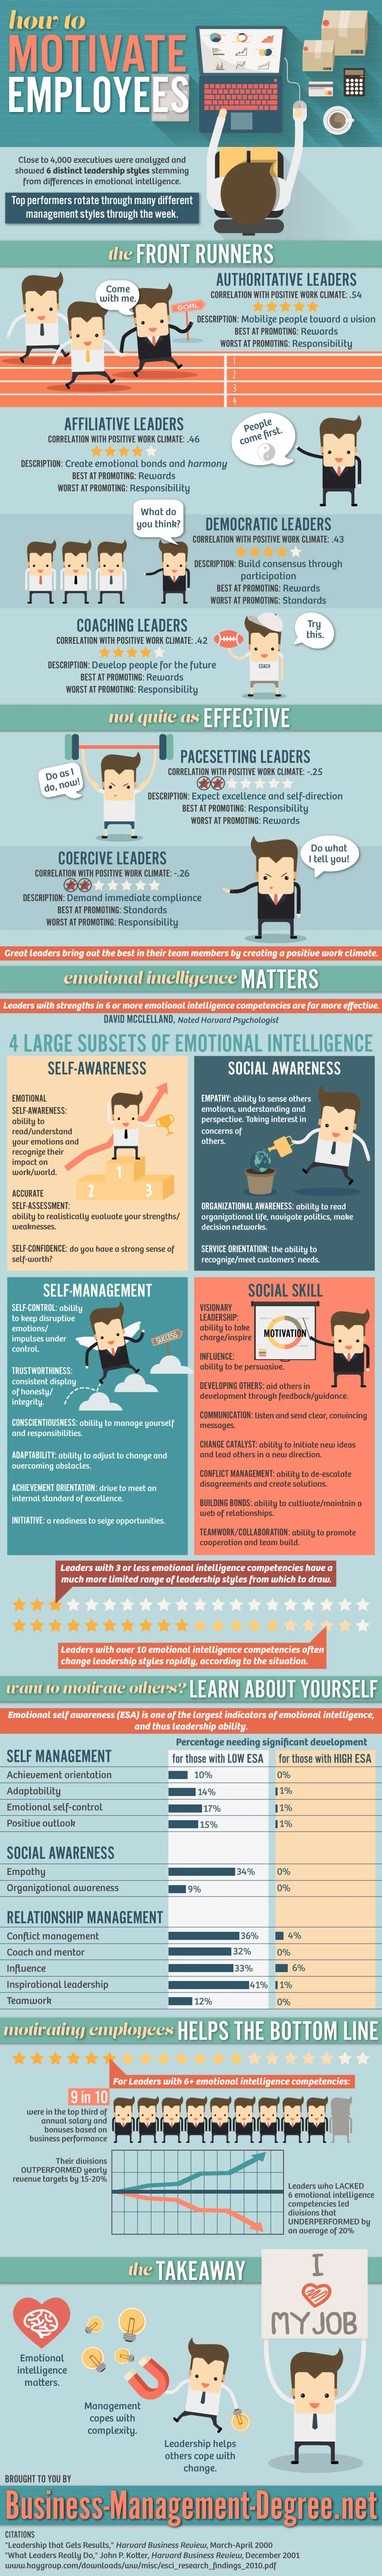 How-to-Motivate-employees